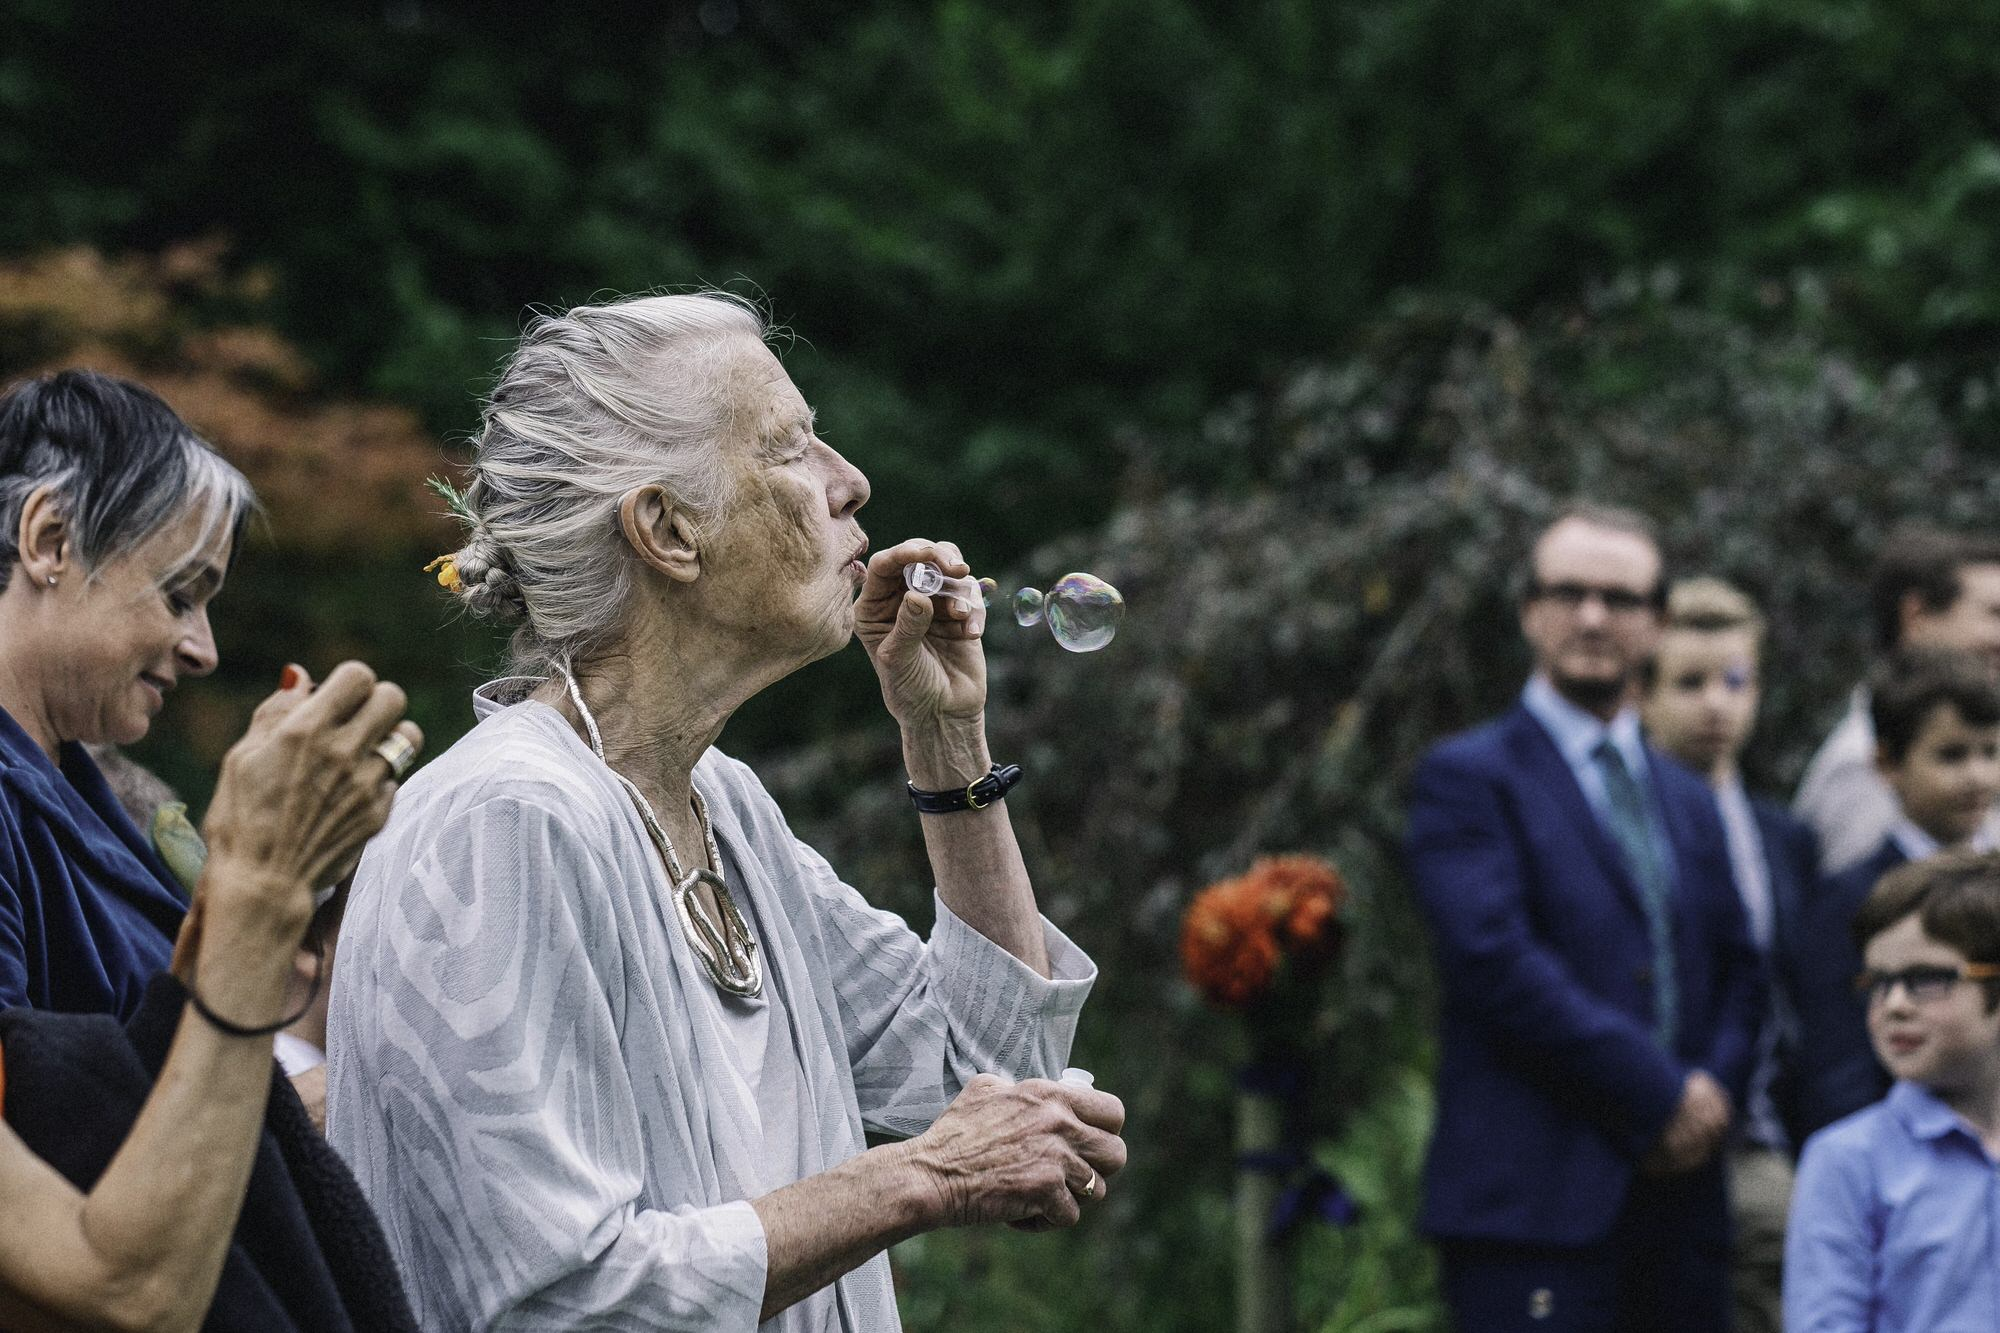 Mother of groom blowing bubbles